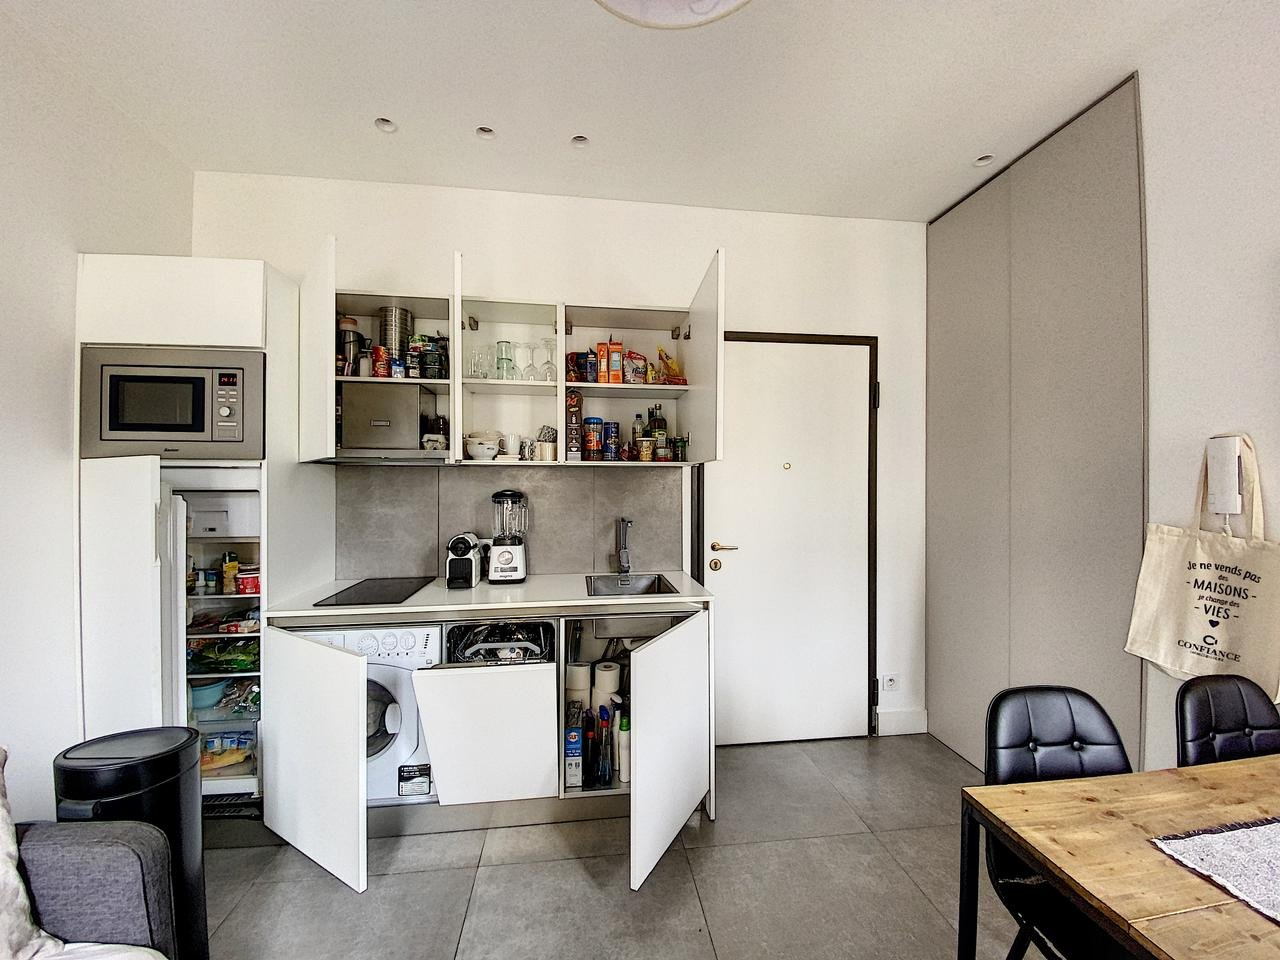 Appartement  2 Rooms 24.03m2  for sale   245000 €